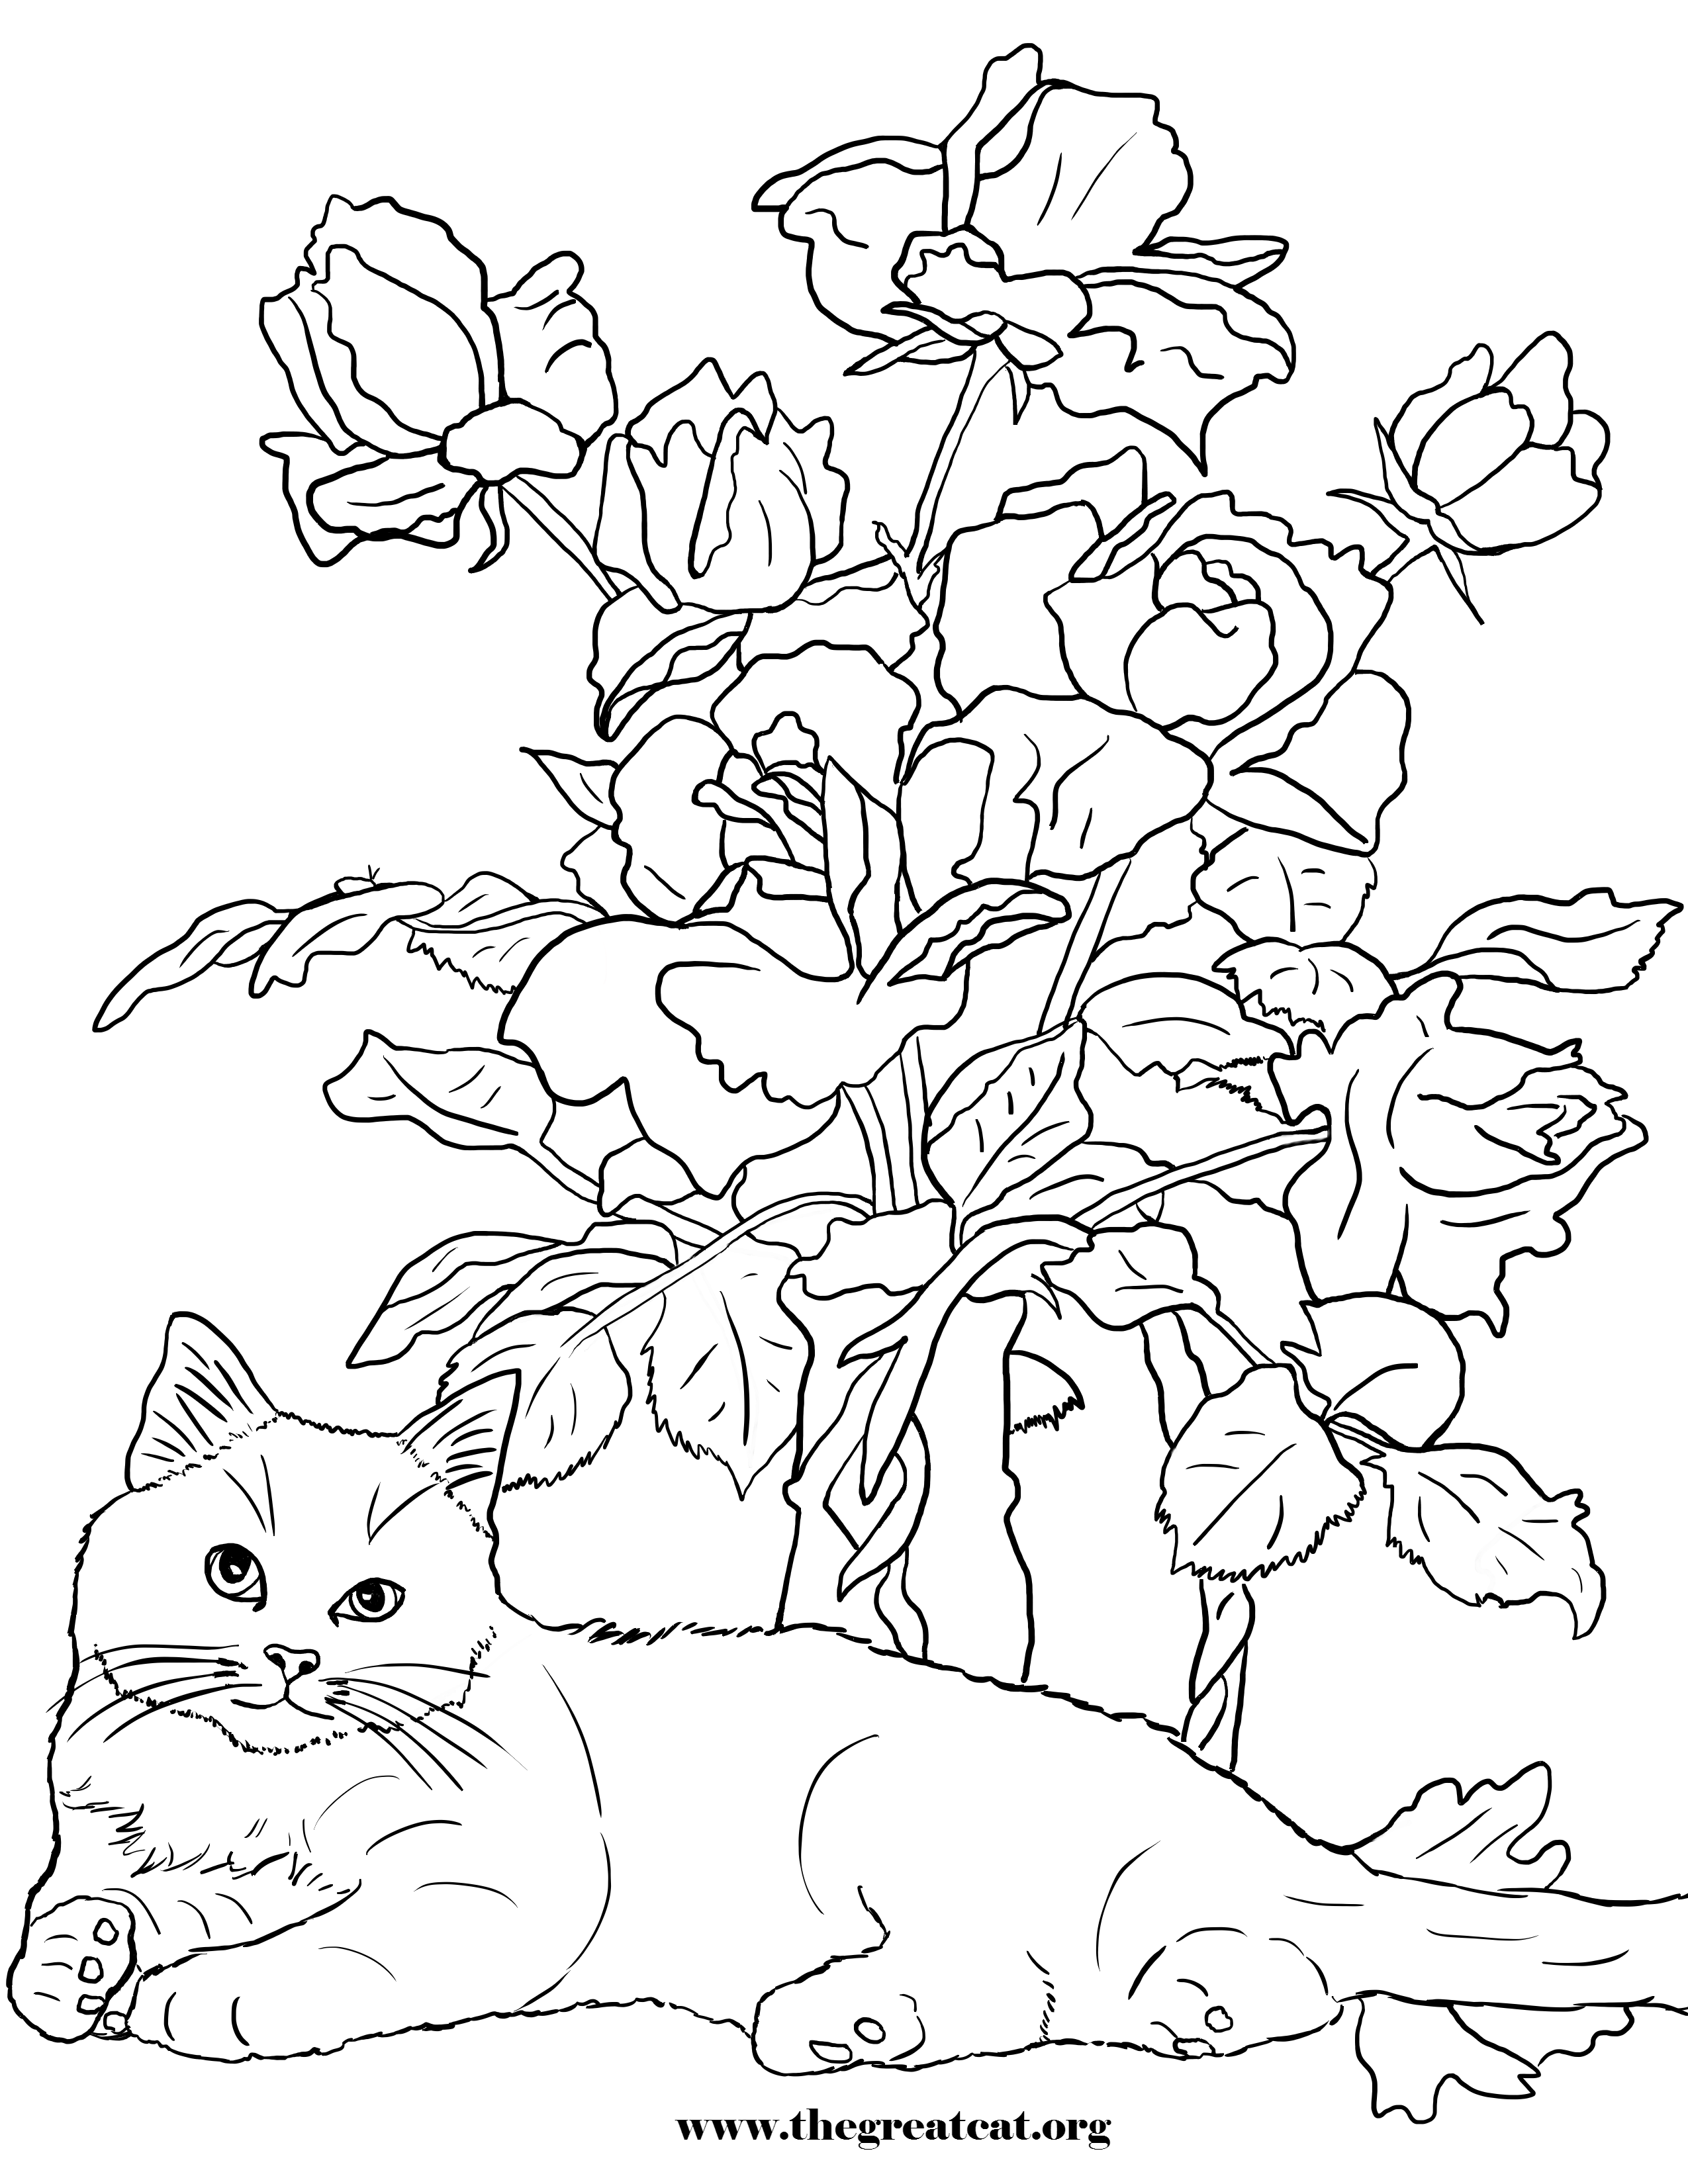 Cats And Flowers Coloring Book Cat Coloring Book Cat Coloring Page Coloring Books